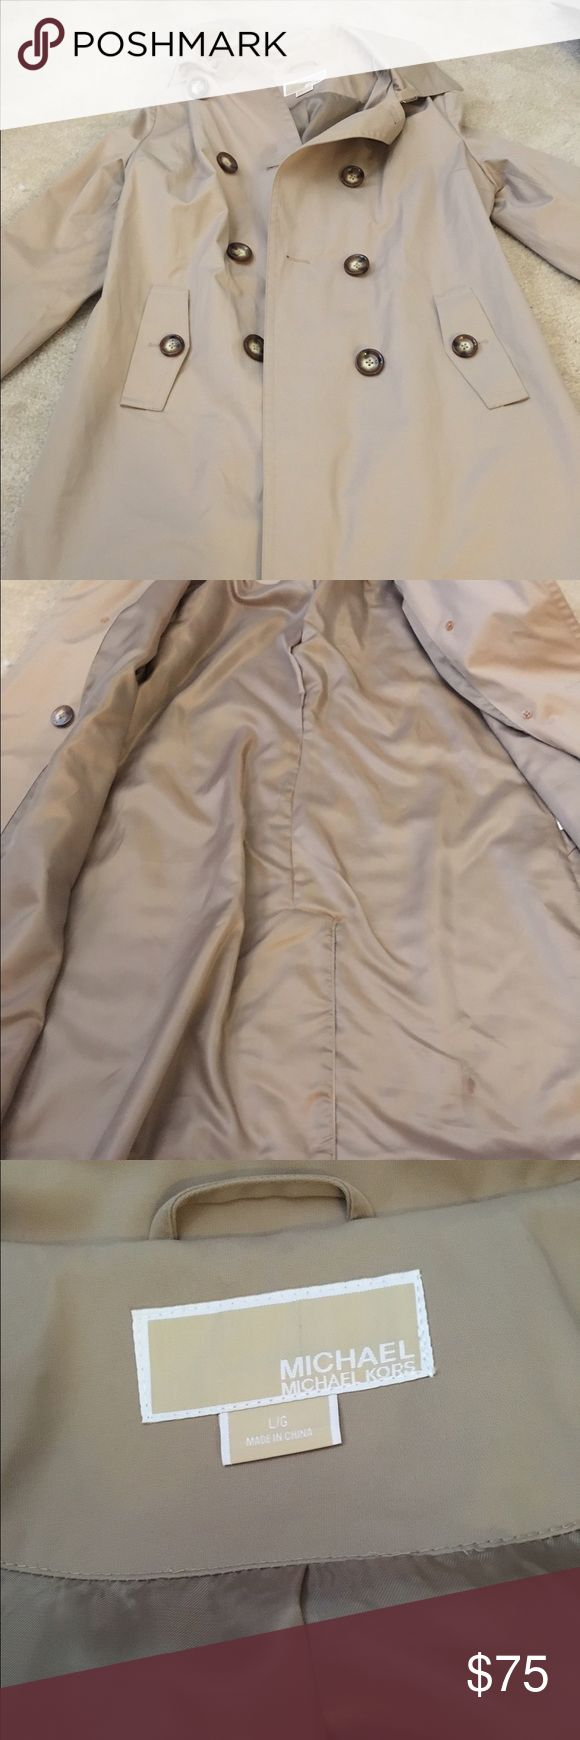 Michael Kors Hooded Raincoat Never worn. Small flaw on bottom right interior. Double breasted. MICHAEL Michael Kors Jackets & Coats Trench Coats